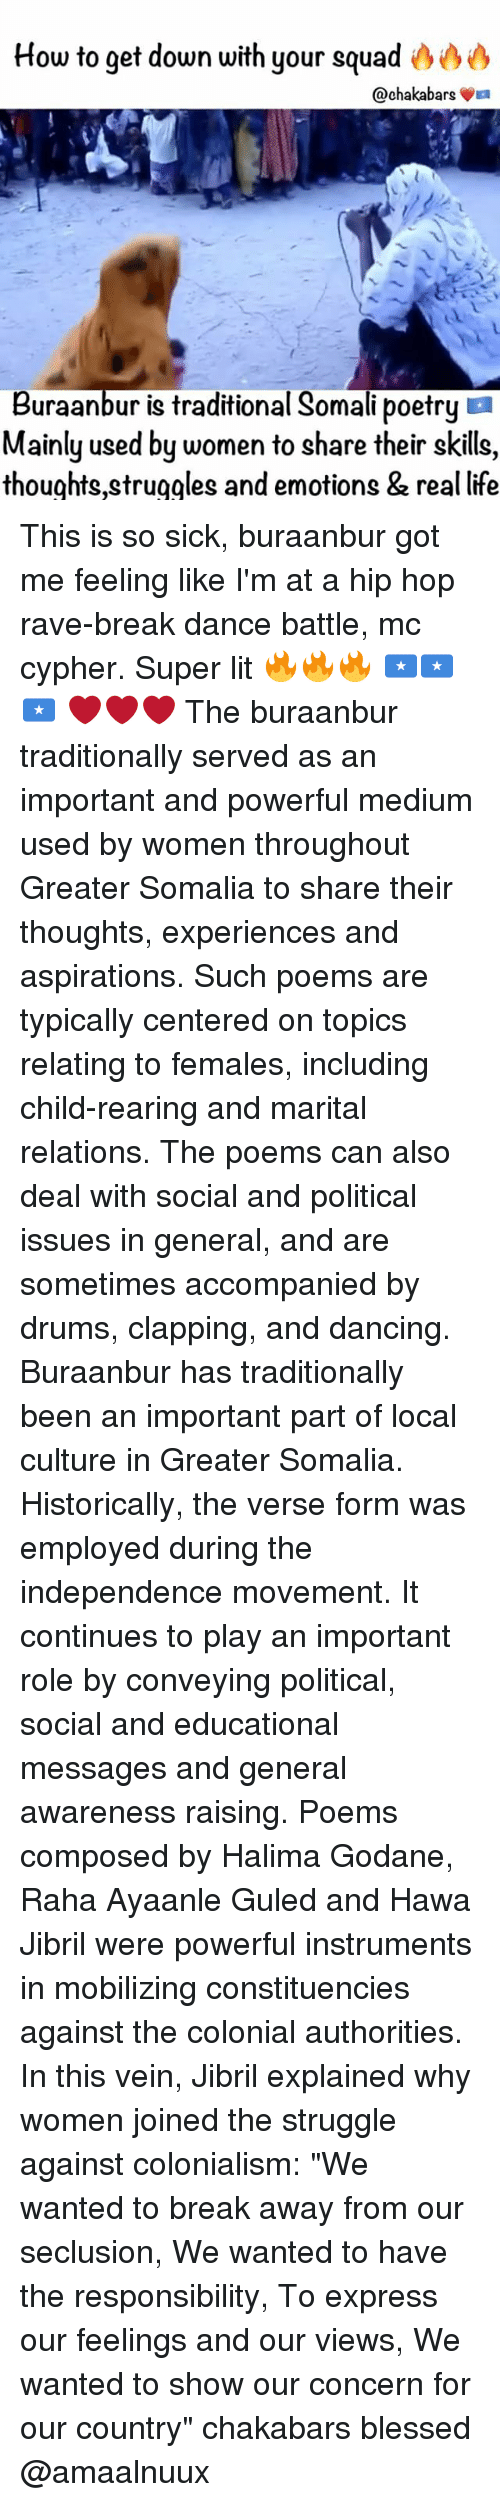 """Raveness: How to get down with your squad  @chaka bars  La  Buraanbur is traditional Somali poetry  Mainly used by women to share their skills,  thoughts struggles and emotions & real life This is so sick, buraanbur got me feeling like I'm at a hip hop rave-break dance battle, mc cypher. Super lit 🔥🔥🔥 🇸🇴🇸🇴🇸🇴 ❤️❤️❤️ The buraanbur traditionally served as an important and powerful medium used by women throughout Greater Somalia to share their thoughts, experiences and aspirations. Such poems are typically centered on topics relating to females, including child-rearing and marital relations. The poems can also deal with social and political issues in general, and are sometimes accompanied by drums, clapping, and dancing. Buraanbur has traditionally been an important part of local culture in Greater Somalia. Historically, the verse form was employed during the independence movement. It continues to play an important role by conveying political, social and educational messages and general awareness raising. Poems composed by Halima Godane, Raha Ayaanle Guled and Hawa Jibril were powerful instruments in mobilizing constituencies against the colonial authorities. In this vein, Jibril explained why women joined the struggle against colonialism: """"We wanted to break away from our seclusion, We wanted to have the responsibility, To express our feelings and our views, We wanted to show our concern for our country"""" chakabars blessed @amaalnuux"""